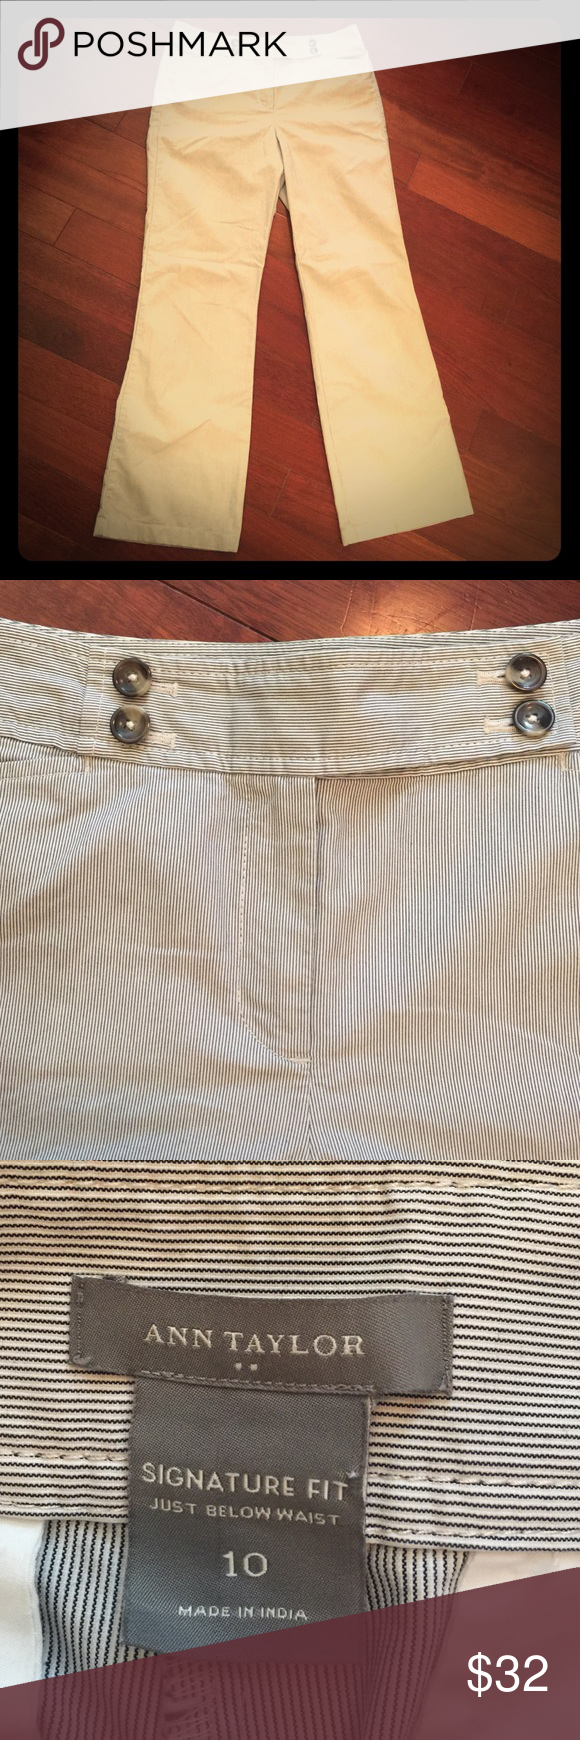 """Ann Taylor. Size: 10. Style: Signature Fit. Ann Taylor. Size: 10. Style: Signature Fit. Just Below the waist. Wide leg trouser pants. Inseam: 31.5"""". Front rise: 10.75"""". White and mine blue pinstripes. Ann Taylor Pants Trousers"""